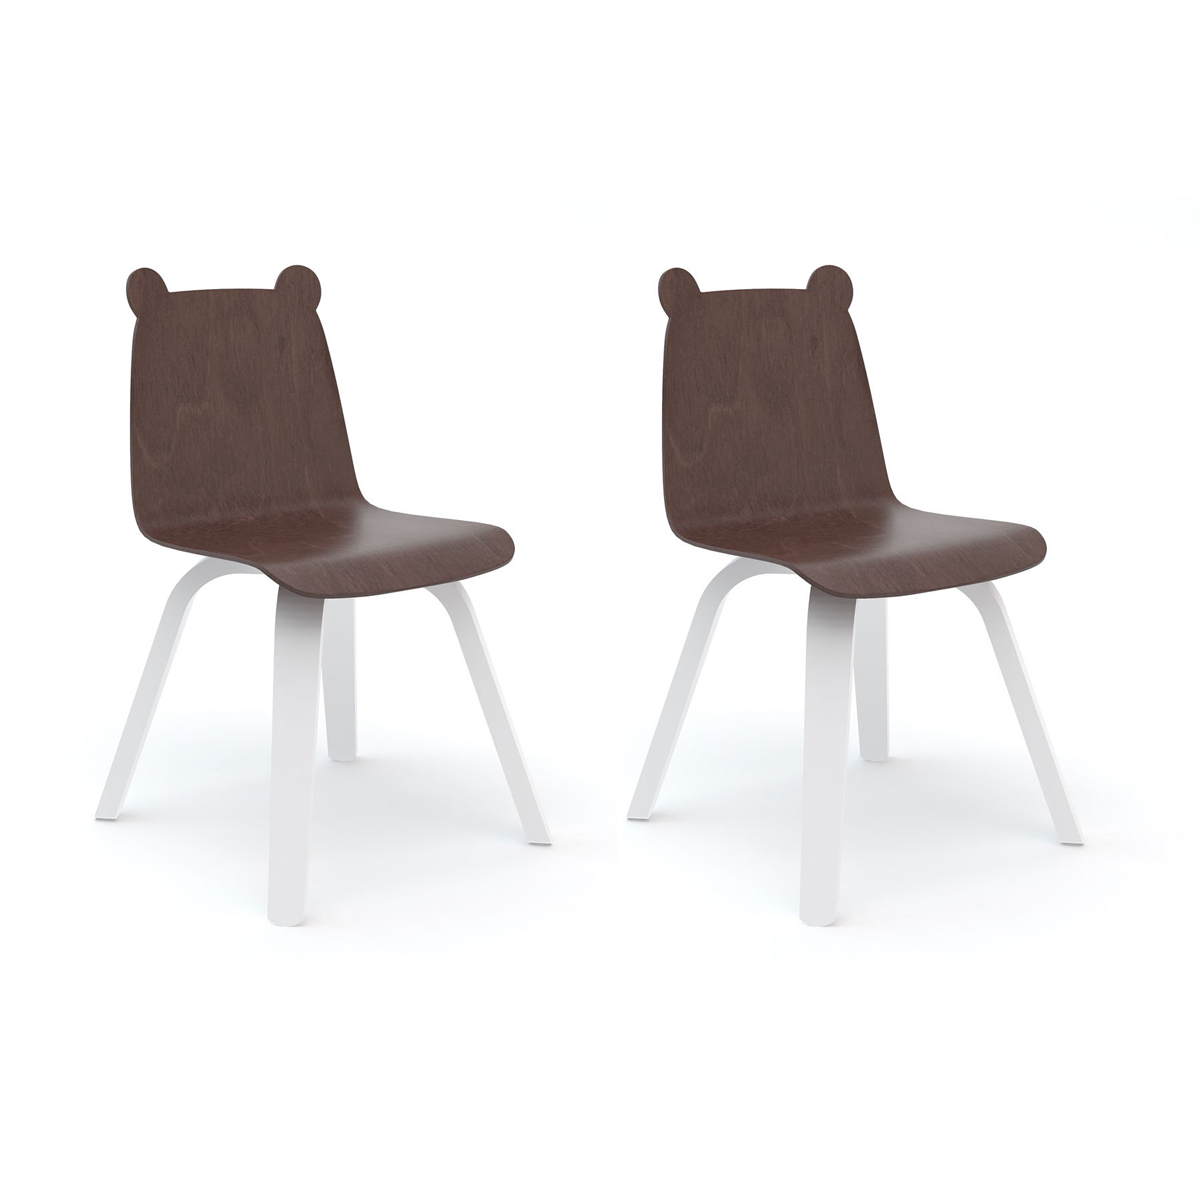 Table & Chaise Lot de 2 Chaises Play Ours - Noyer Lot de 2 Chaises Play Ours - Noyer